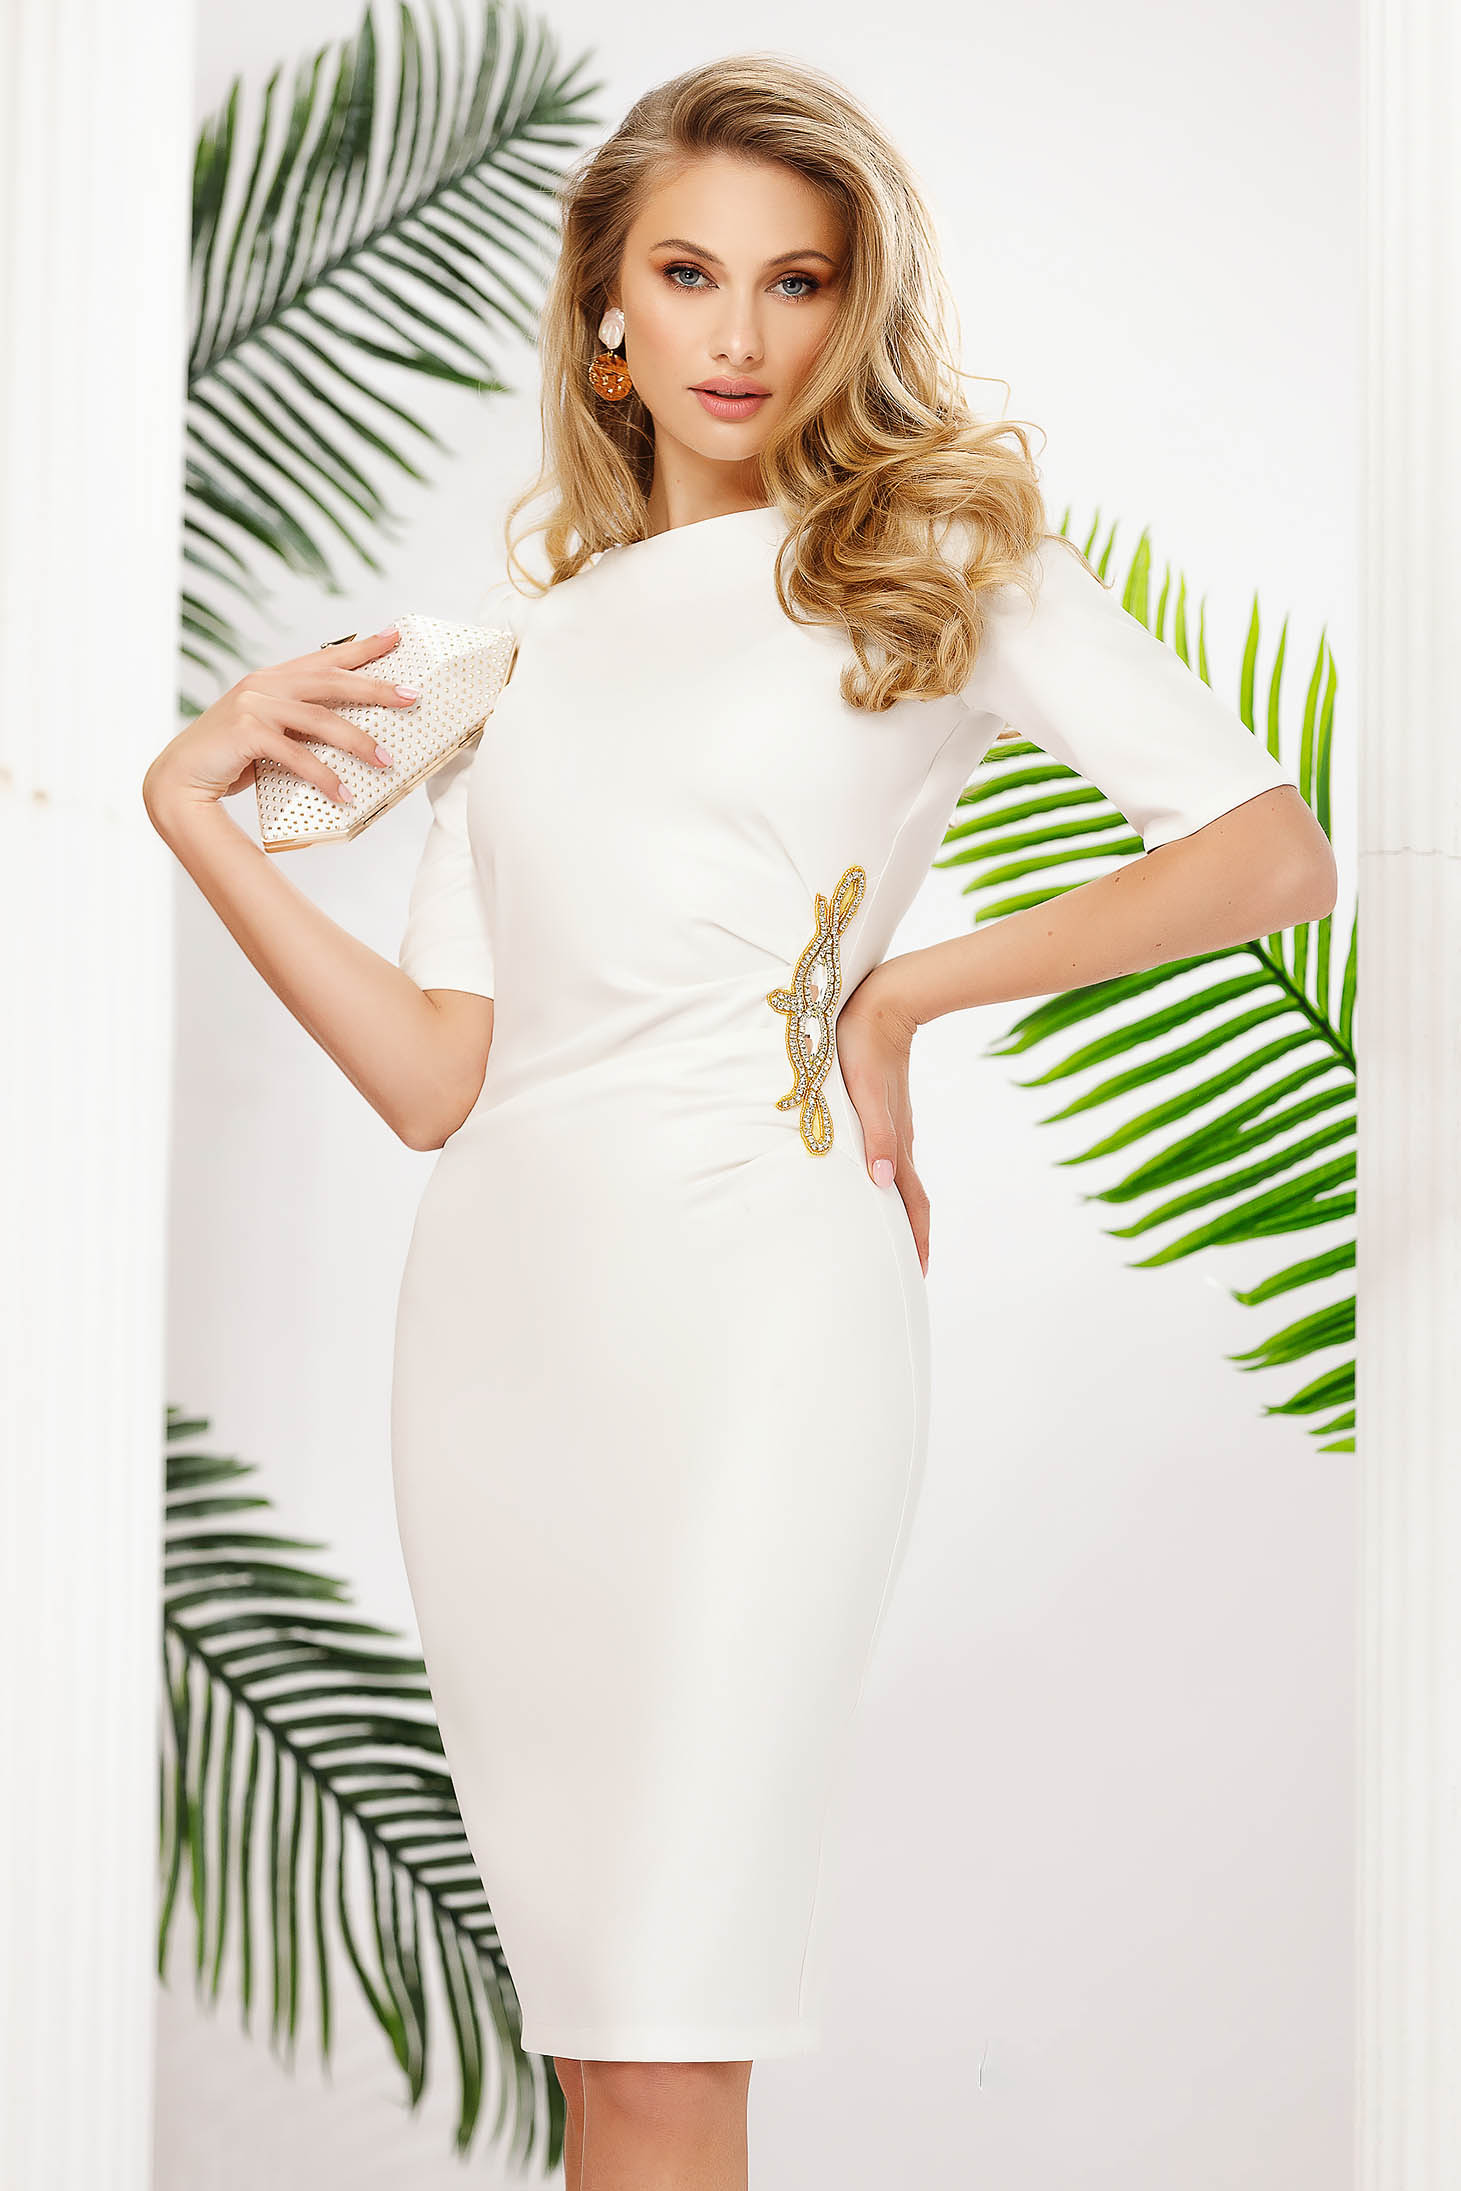 White dress short cut occasional pencil slightly elastic fabric with glitter details